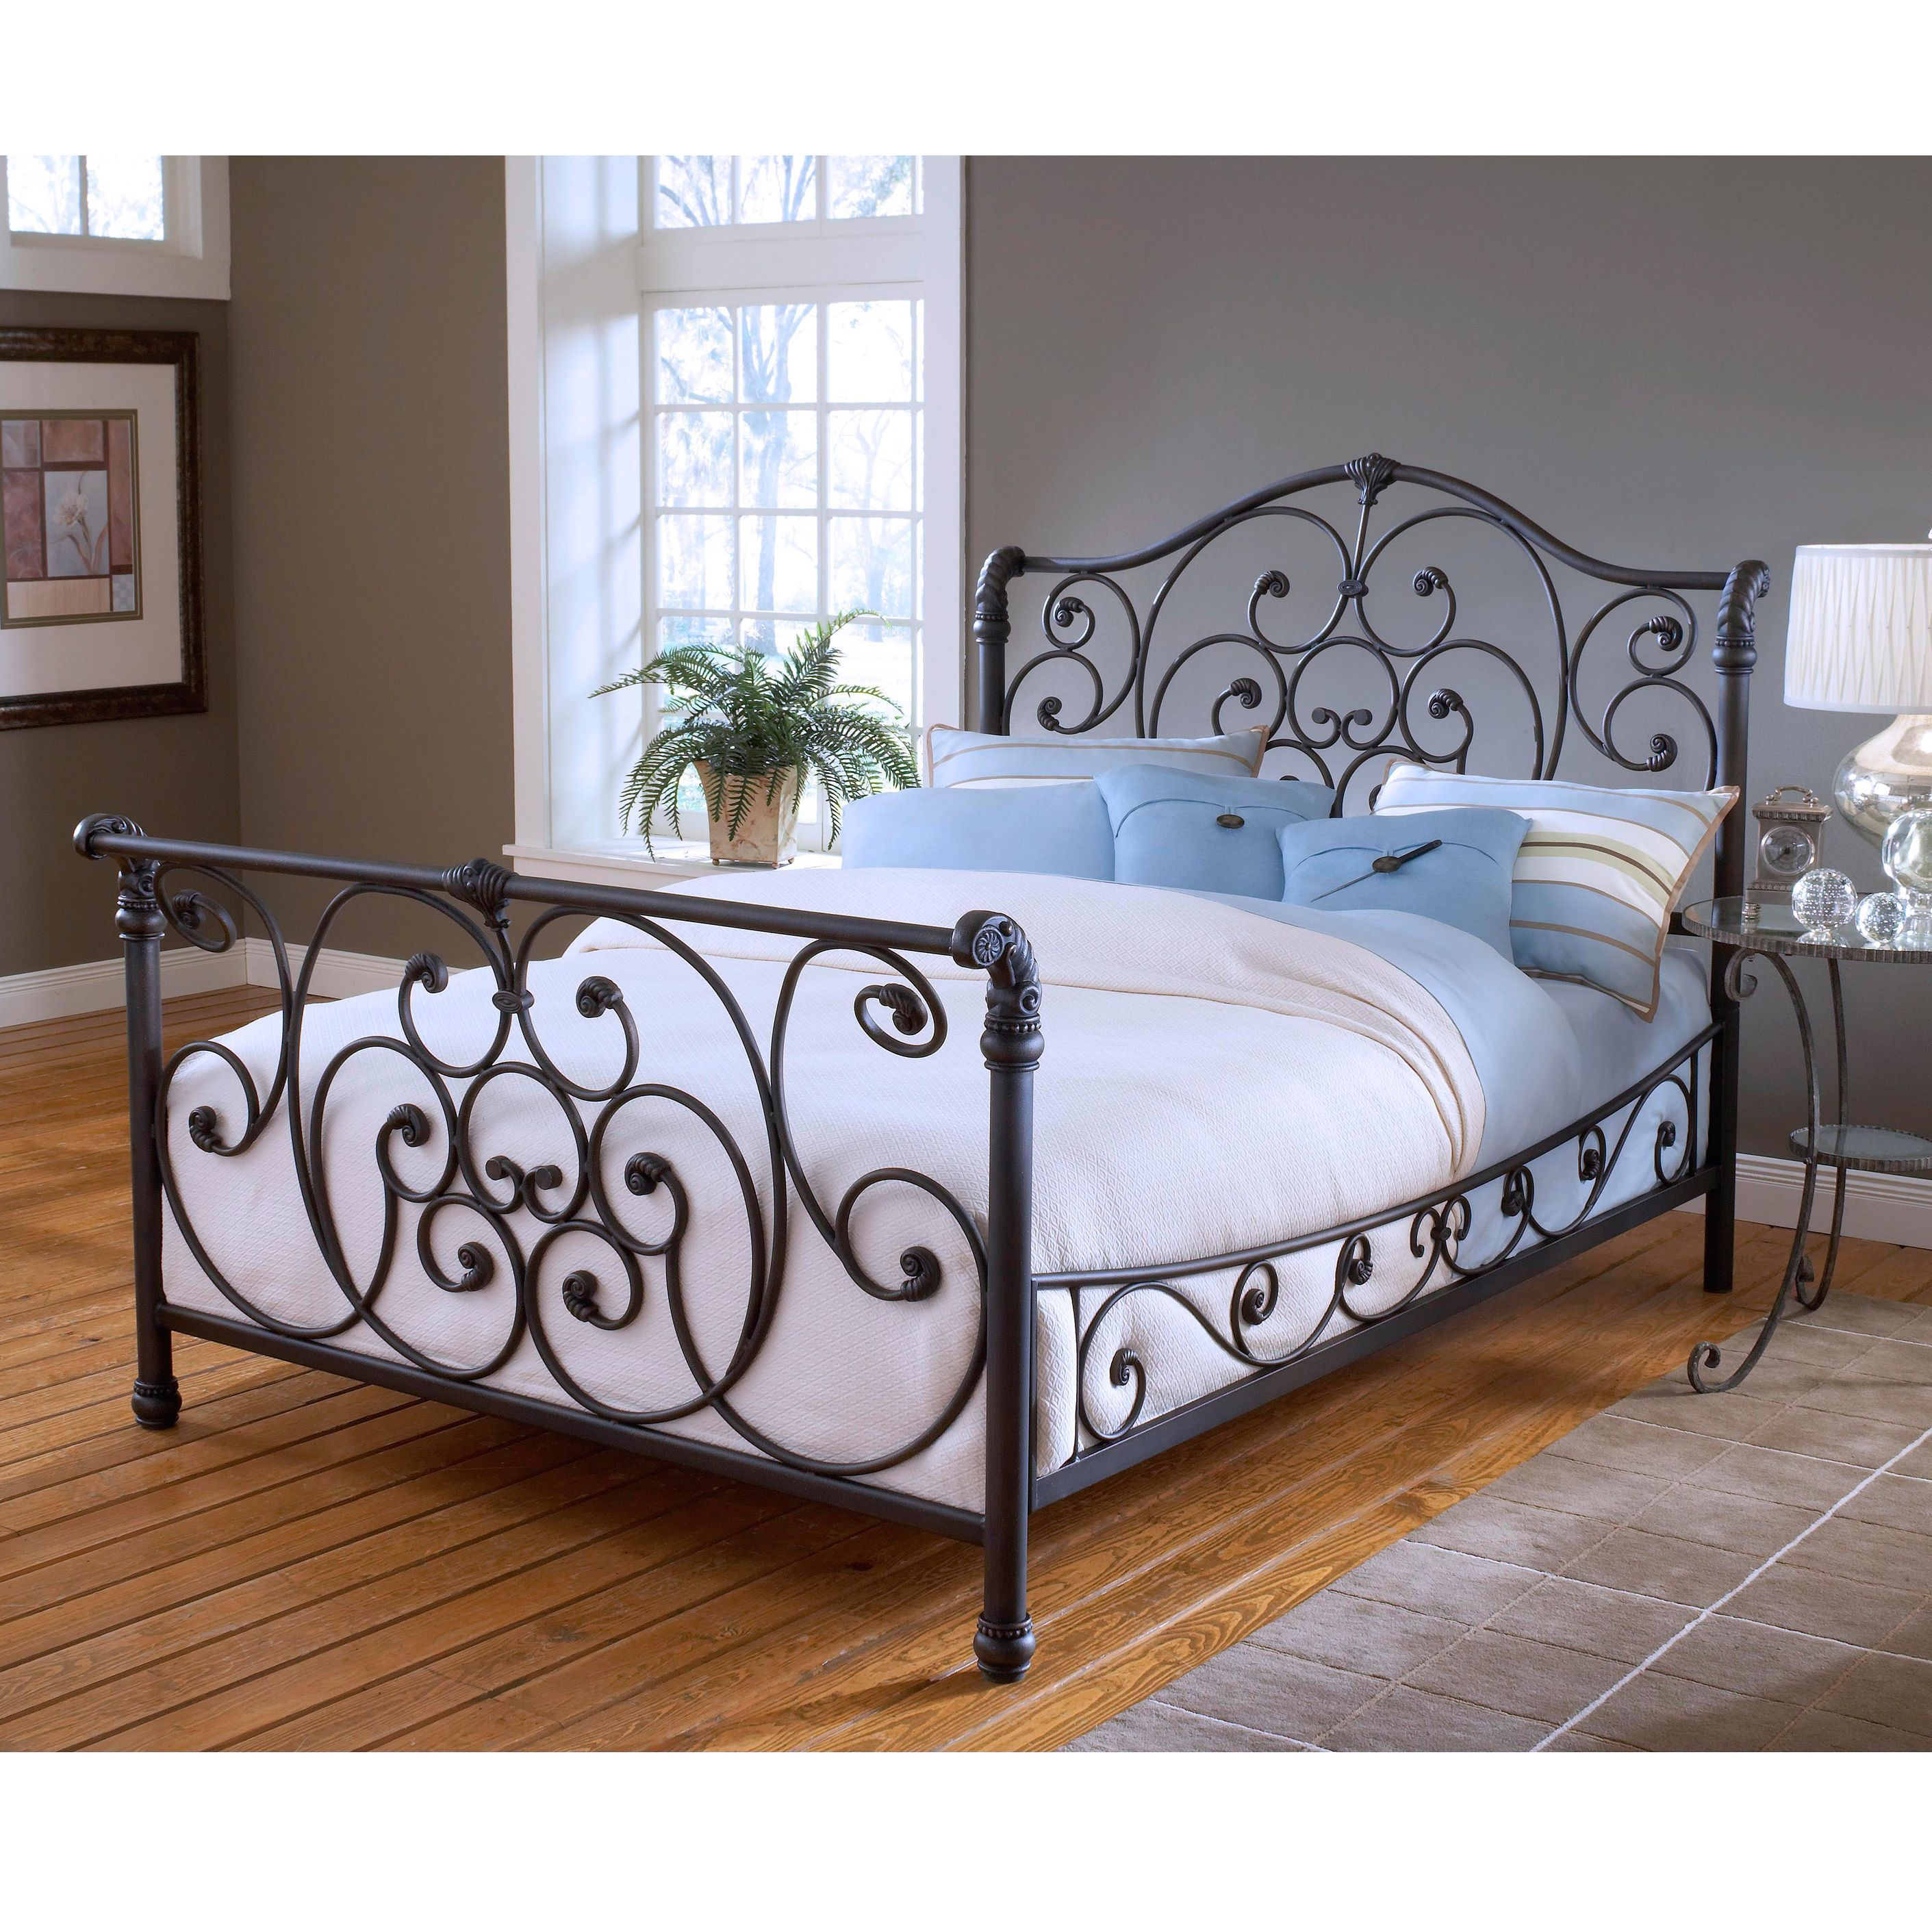 ikea frame amazon metal bed full s with and headboard size footboard king room frames